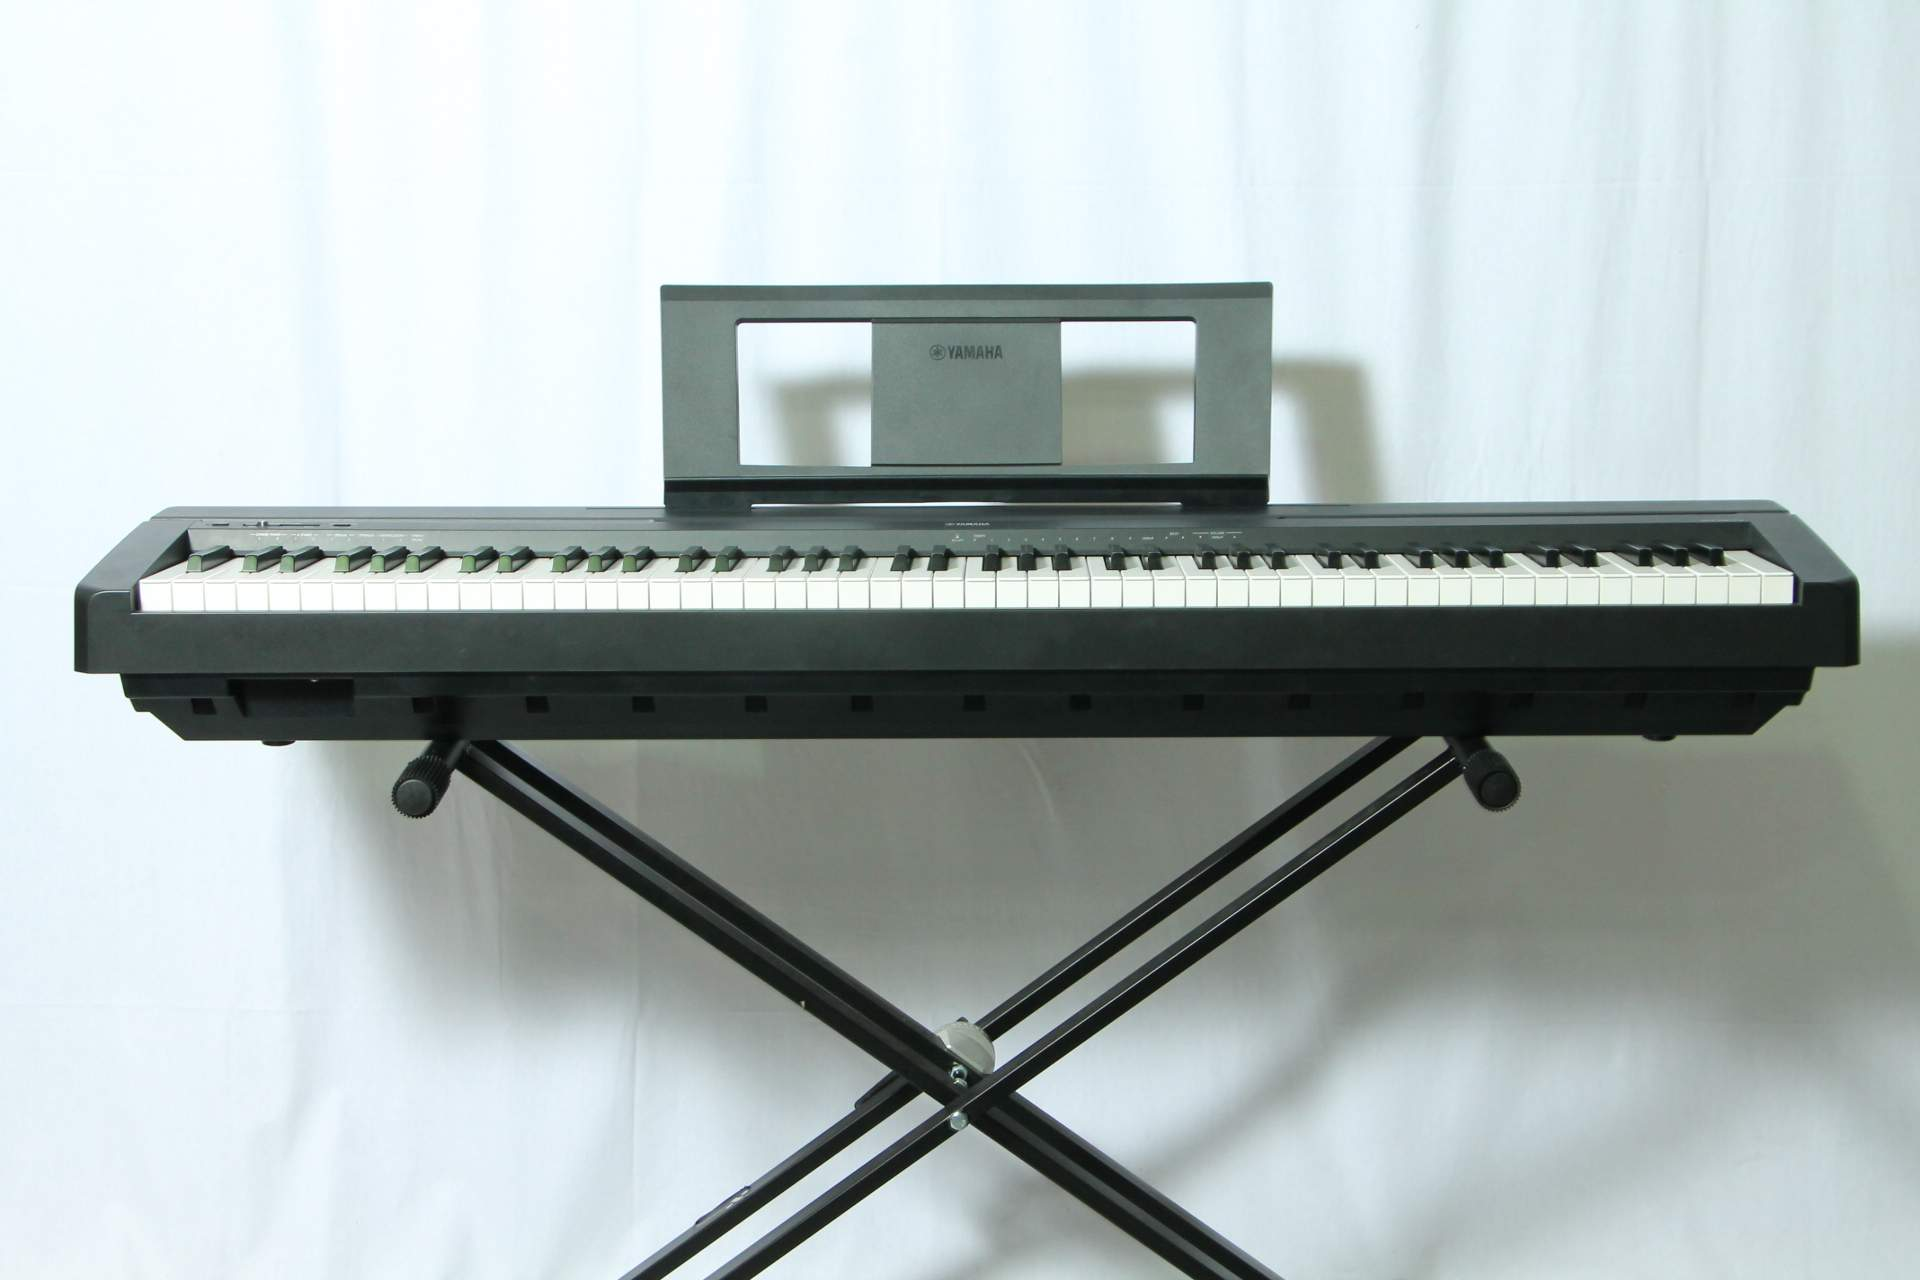 yamaha p45b rent from 16 month musicorp australia. Black Bedroom Furniture Sets. Home Design Ideas